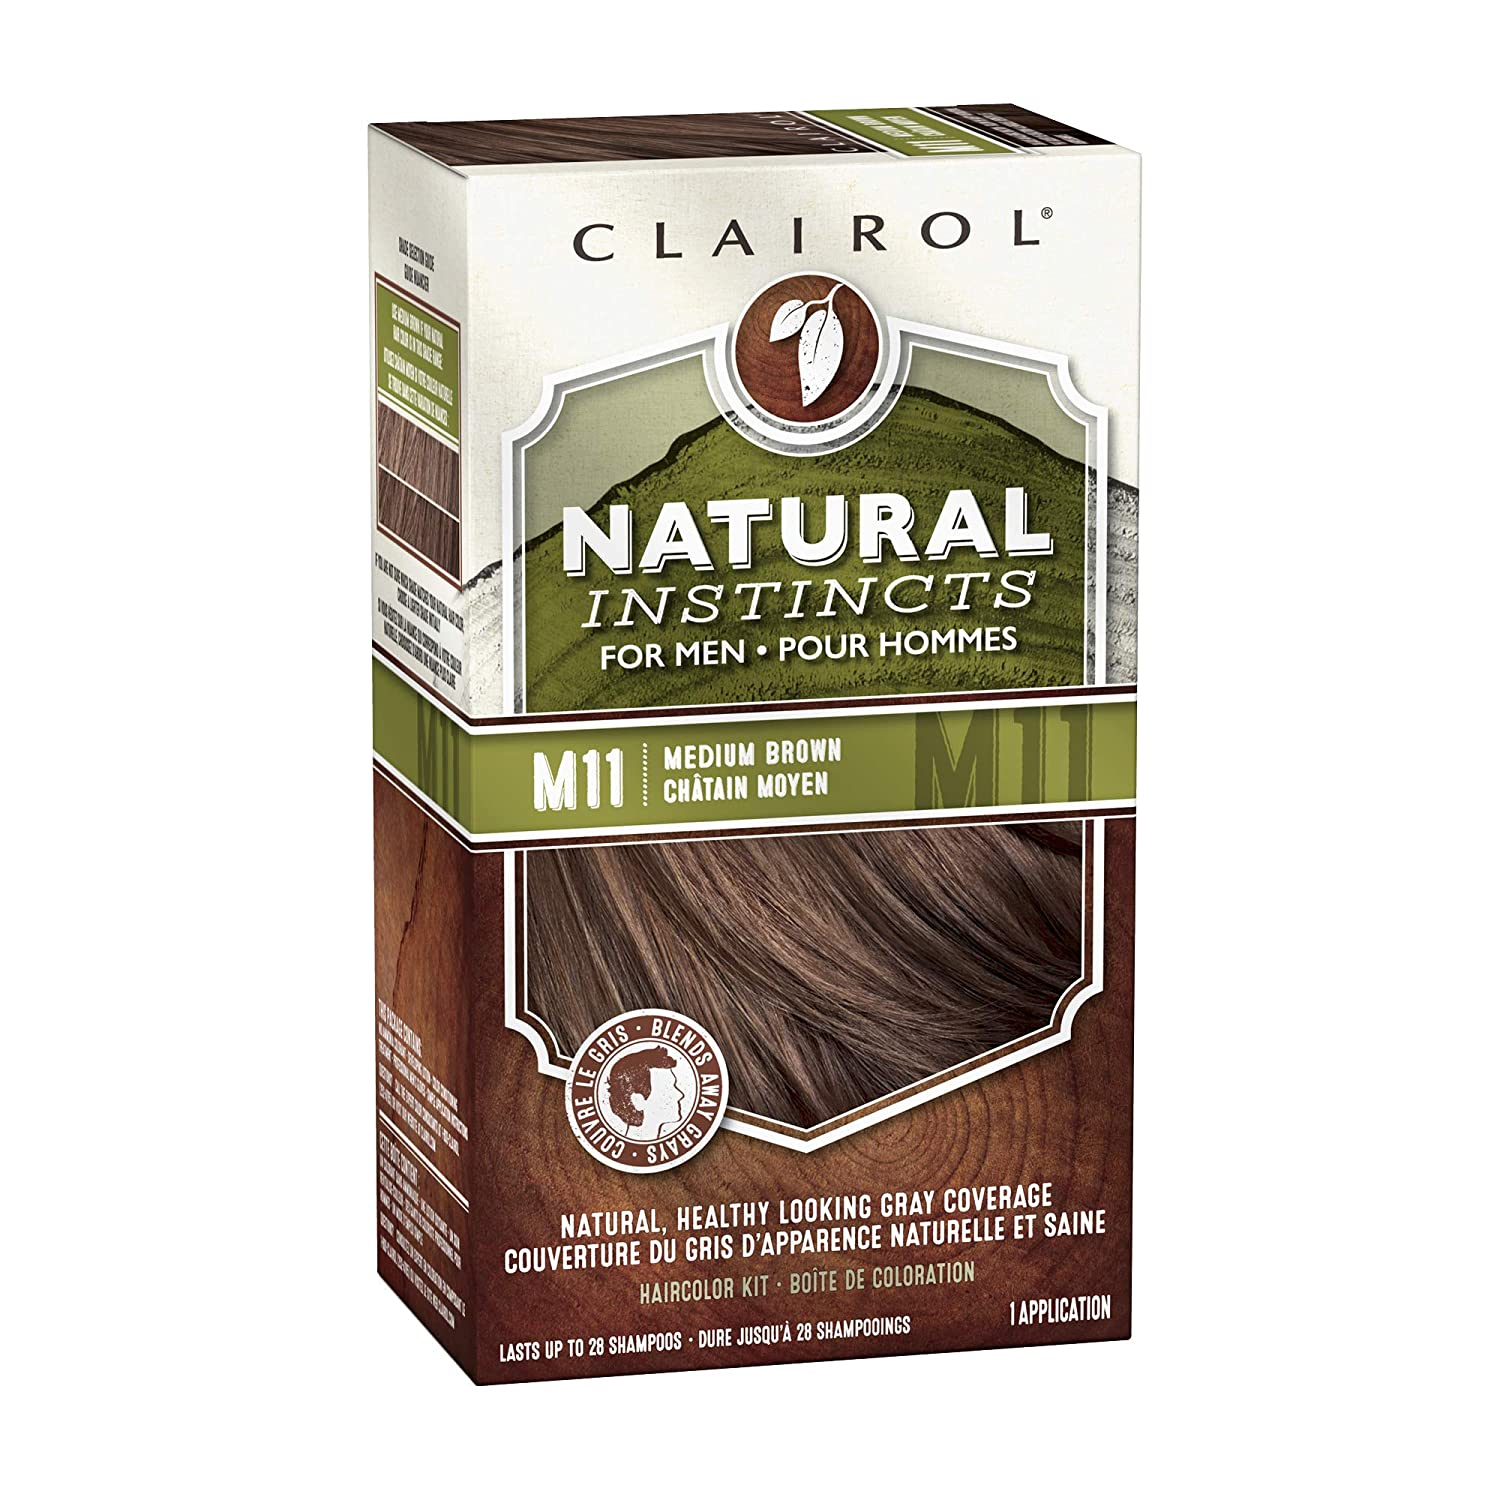 Clairol Natural Instincts Semi-Permanent Hair Color For Men, M11 Medium Brown Color, 3 Count